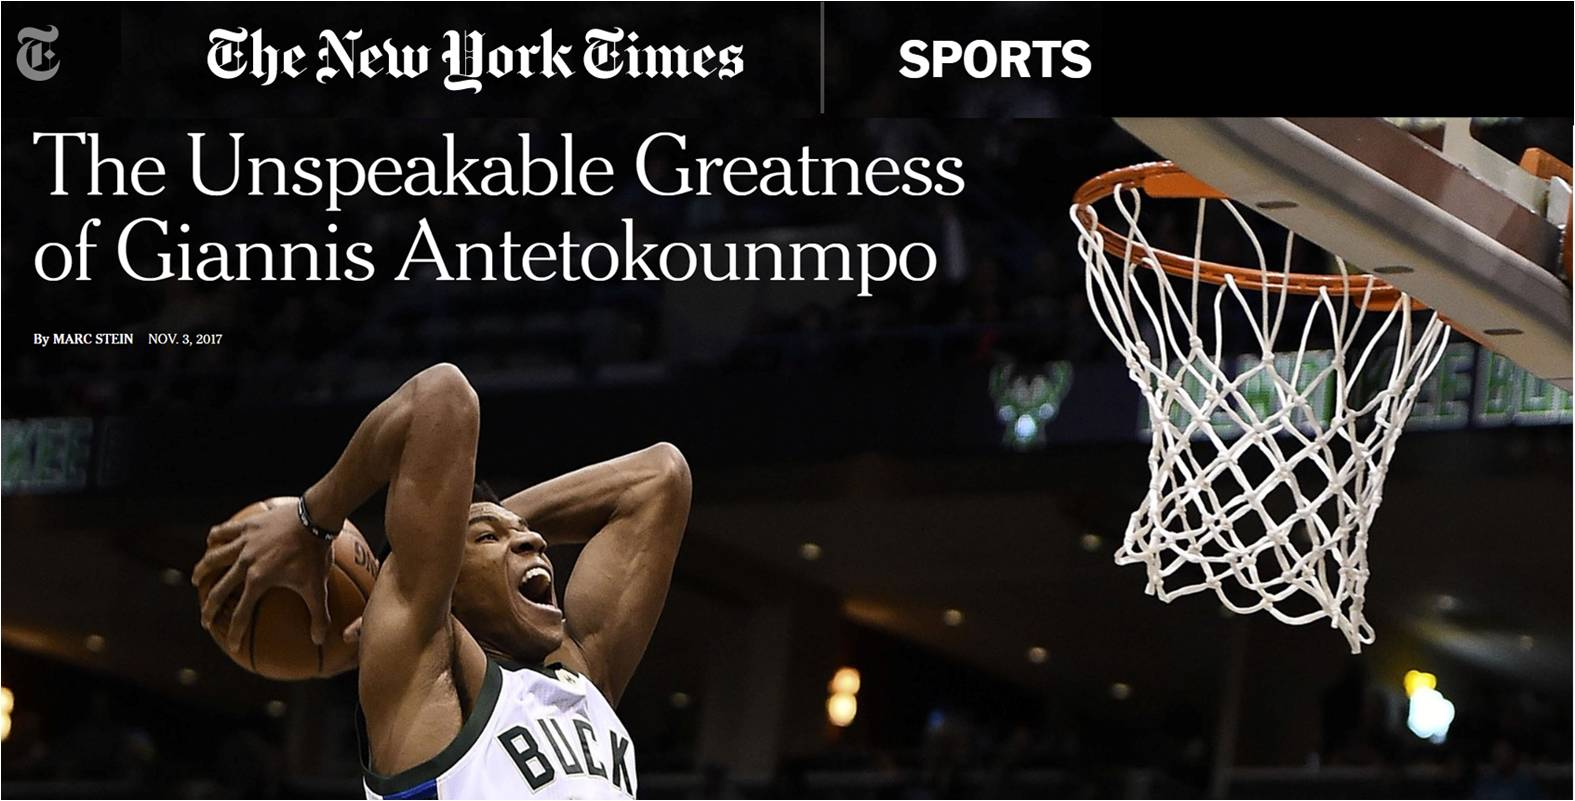 Giannis Antetokounmpo, NBA player and STR8 brand ambassador